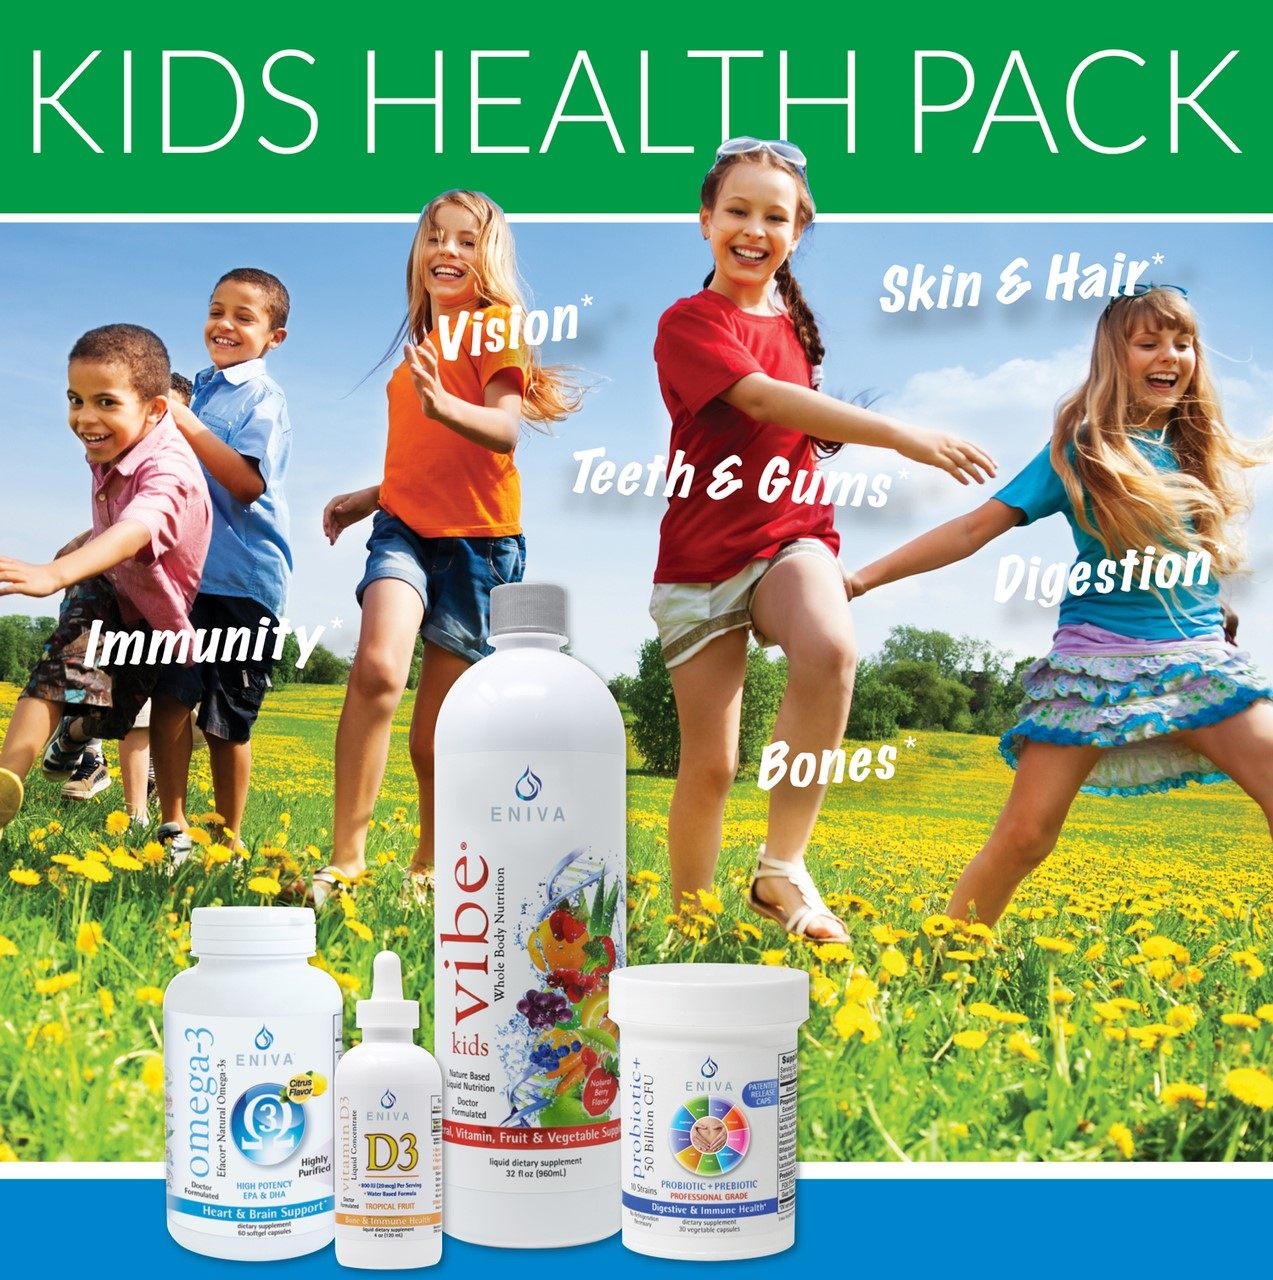 kids-health-pack.jpg